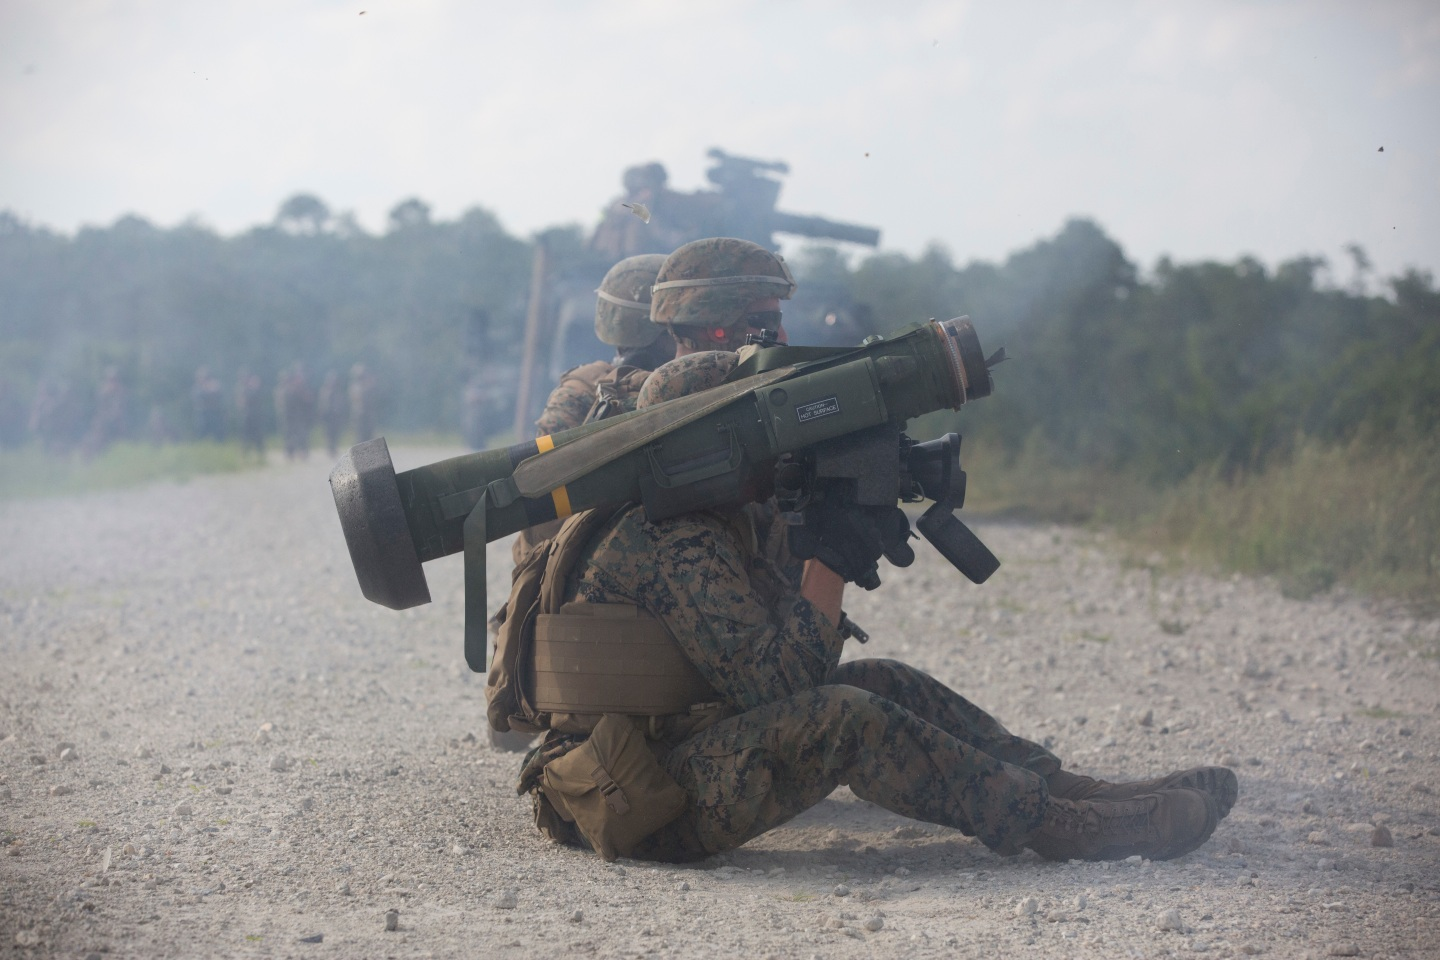 U.S. Marines from Combined Anti-Armor Team Platoon, Weapons Company, 1st Battalion, 2nd Marine Regiment (1/2), 2nd Marine Division, fire a FMG 148 Javelin shoulder fire anti-tank missile during a live fire range at Range G3 on Camp Lejeune, N.C., July 6, 2016. The purpose of the exercise was to maintain military occupation specialty proficiency and to prepare for a Deployment For Training exercise. (U.S. Marine Corps photo by Lance Cpl. Sarah N. Petrock, 2d MARDIV Combat Camera/Released) Unit: 2D Marine Division Combat Camera